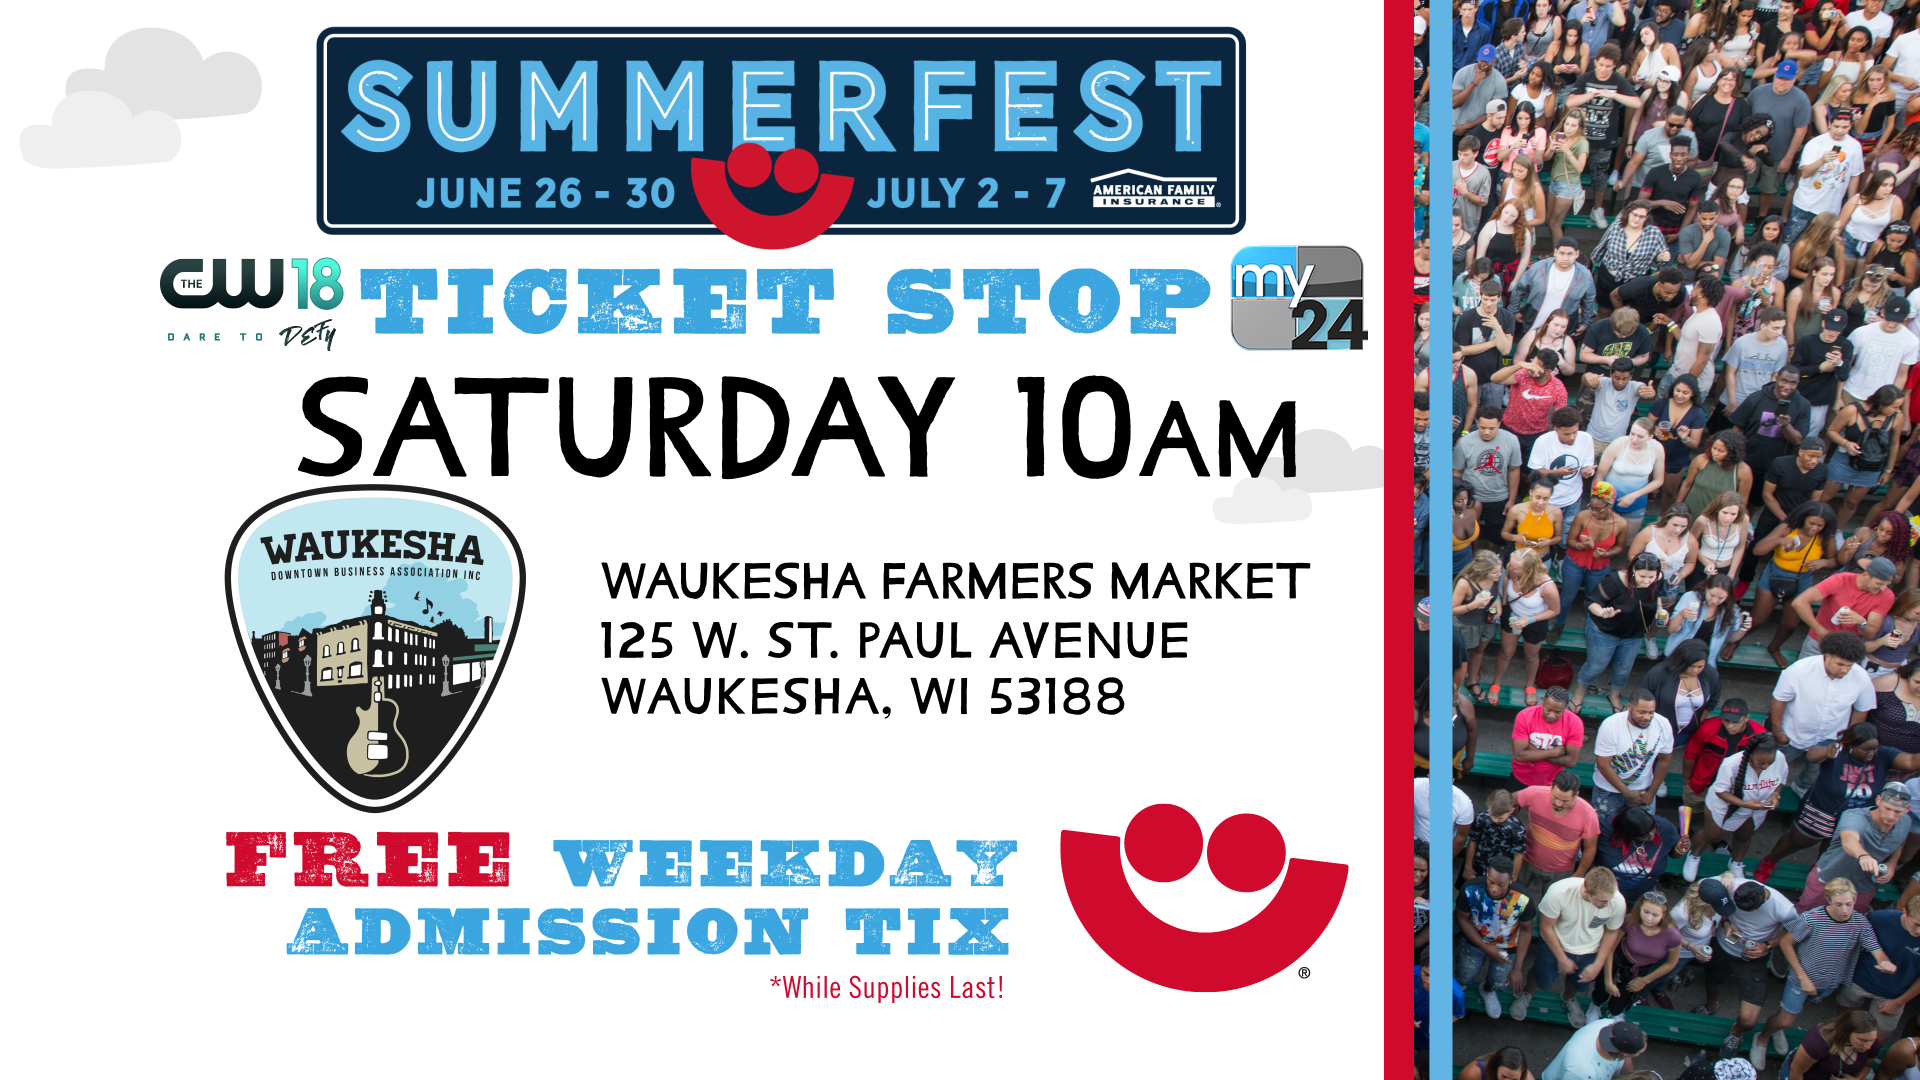 Summerfest 2019 Ticket Stop | Waukesha Farmers Market (06.15.19)